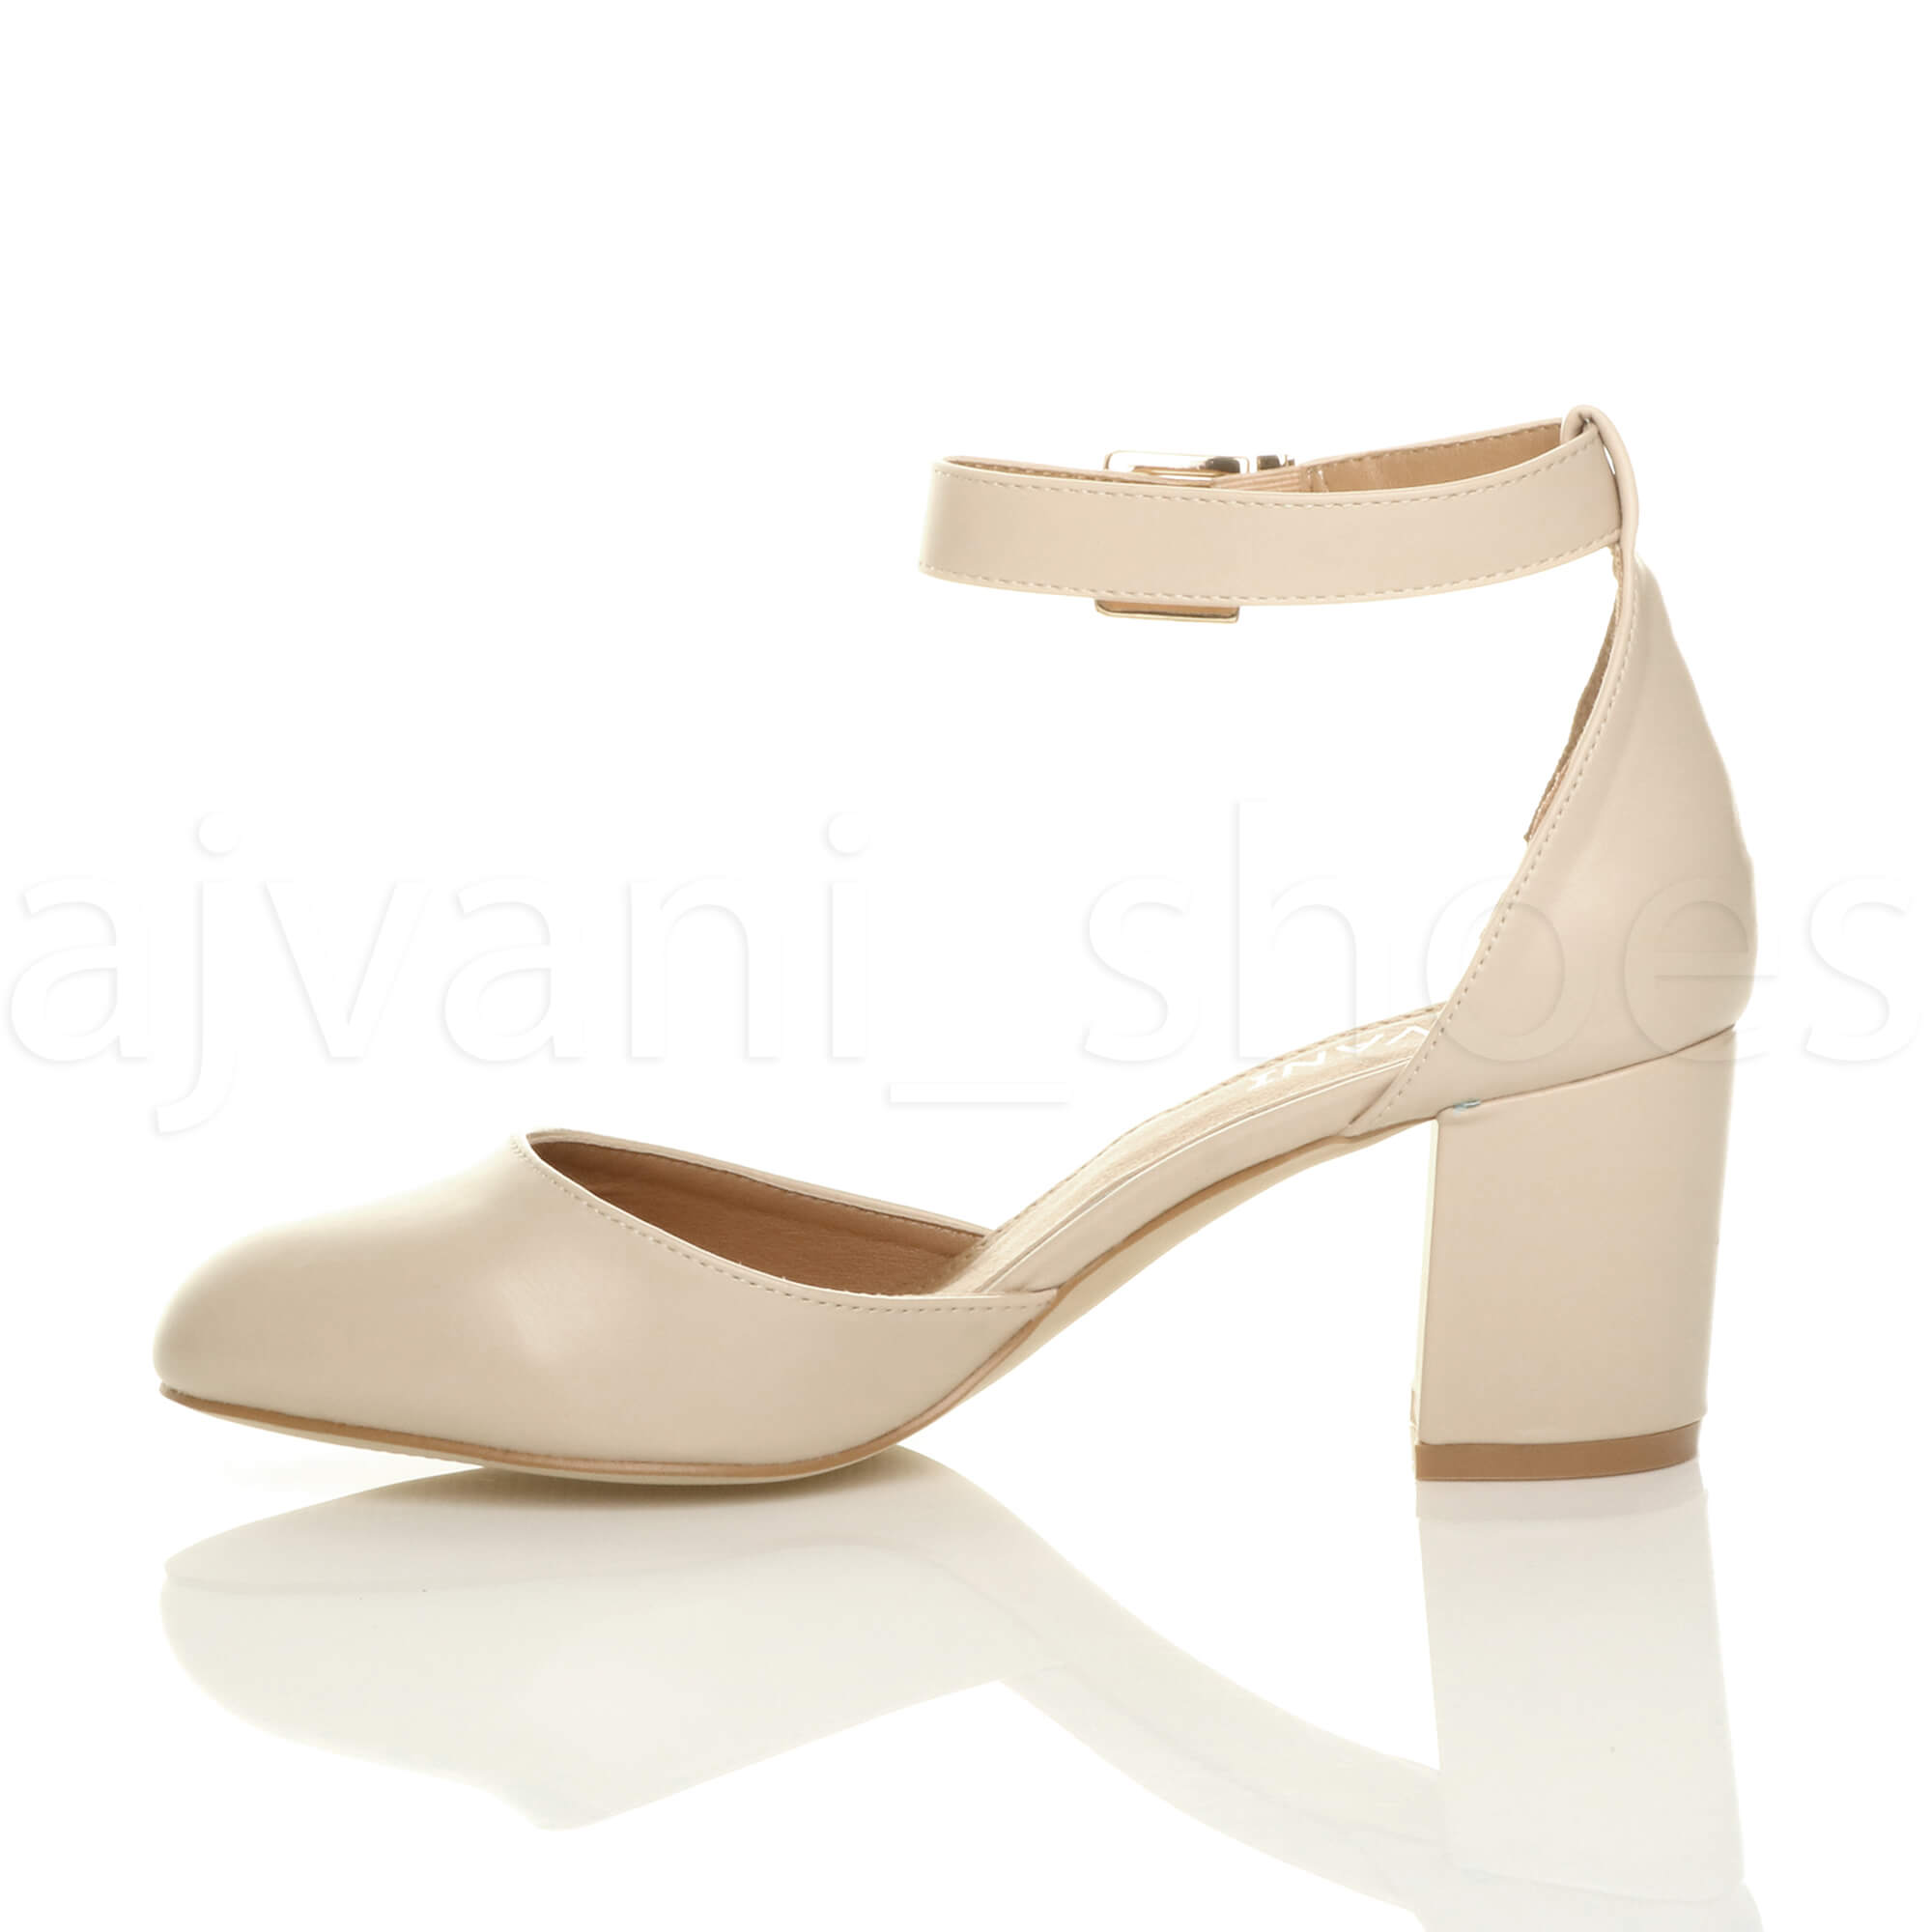 WOMENS-LADIES-LOW-MID-BLOCK-HEEL-ANKLE-STRAP-MARY-JANE-COURT-SHOES-SANDALS-SIZE thumbnail 108